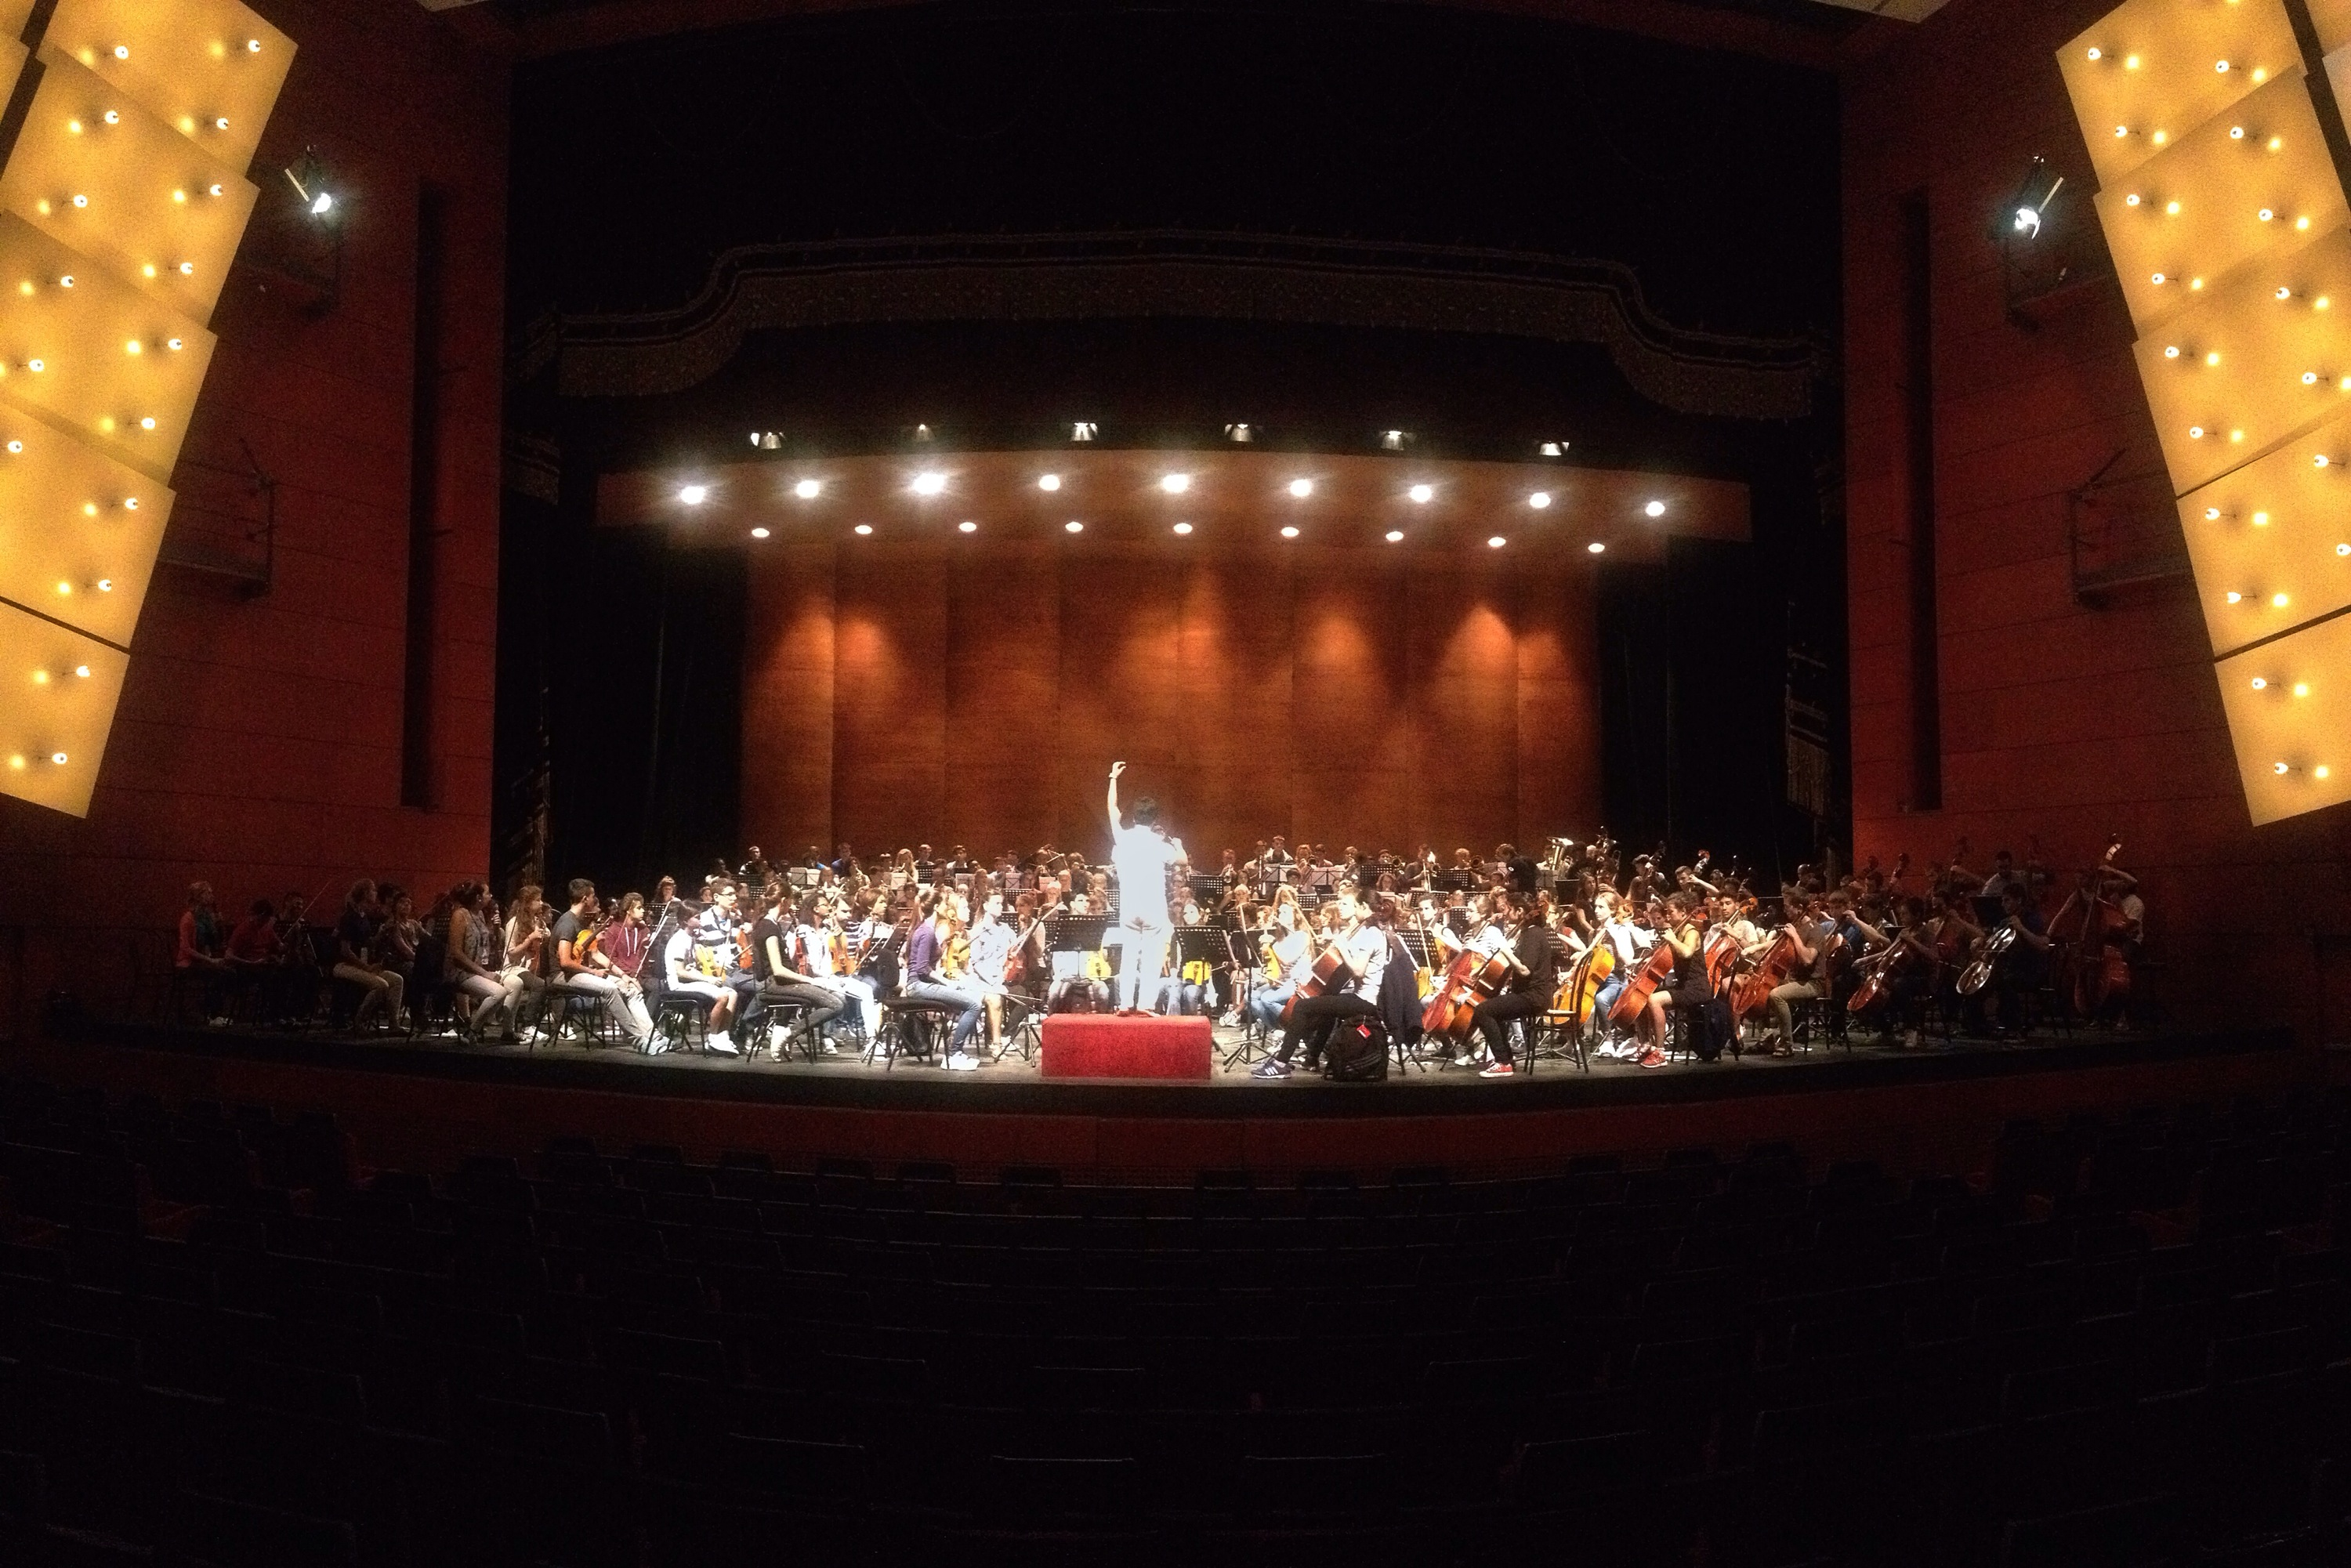 The full Sistema Europe Youth Orchestra playing together for the first time in Teatro degli Arcimboldi